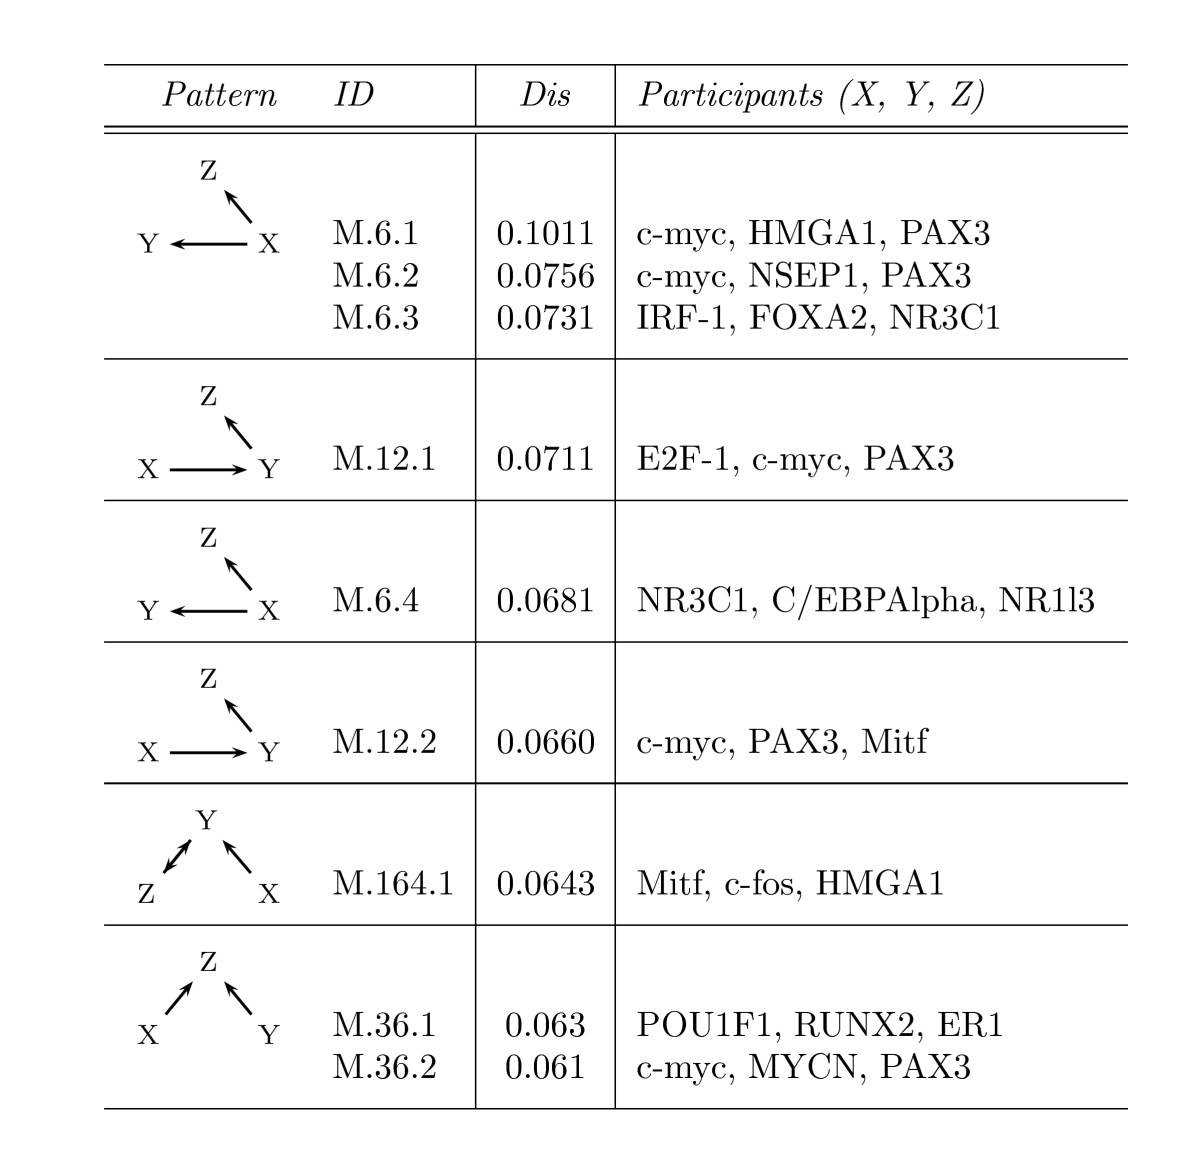 http://static-content.springer.com/image/art%3A10.1186%2F1752-0509-3-53/MediaObjects/12918_2008_Article_321_Fig9_HTML.jpg